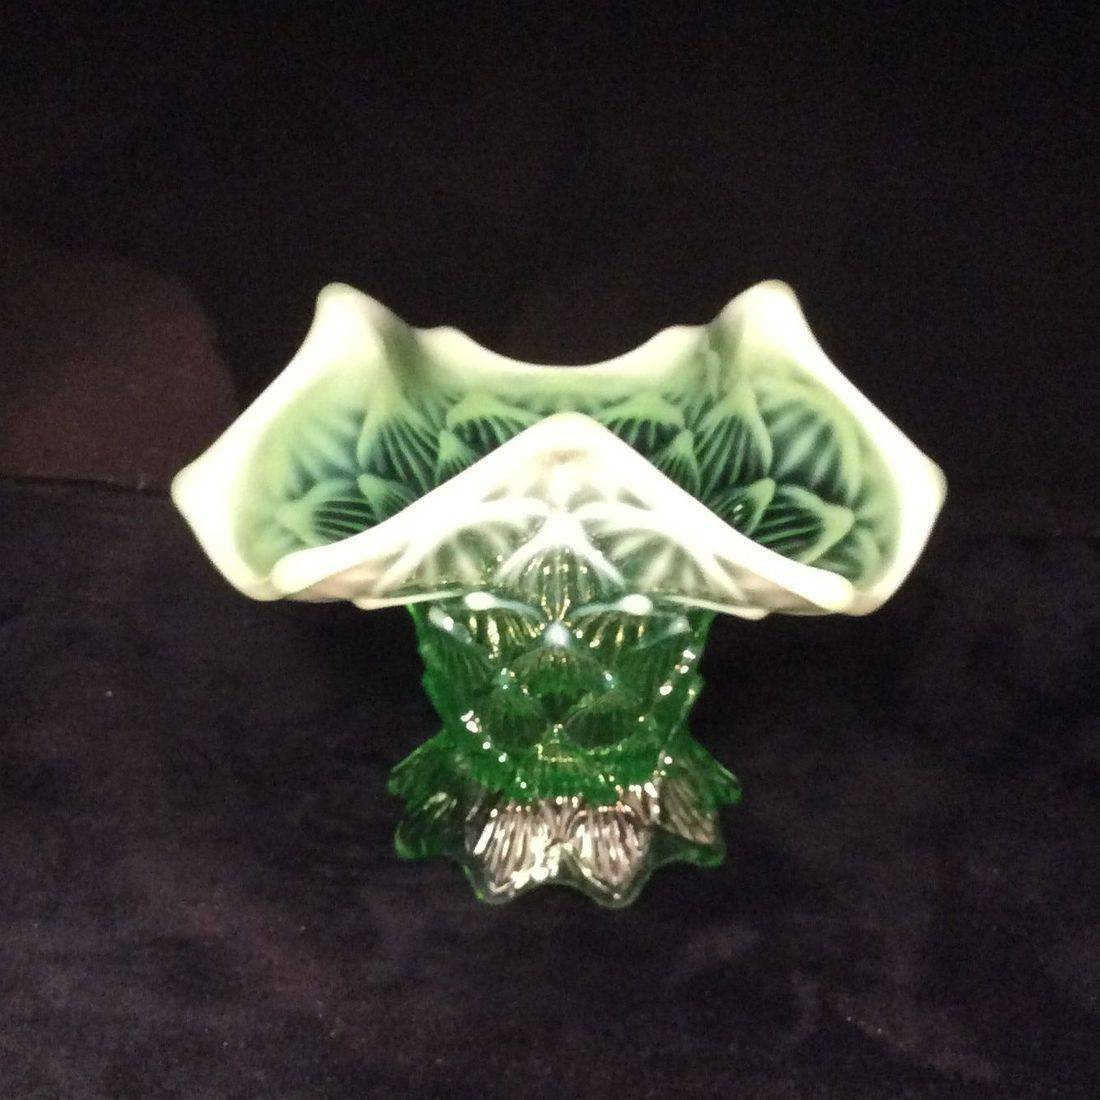 """Early 1900's Northwood Green Vasoline Opalescent Vase Palisades Pattern  4-5/8"""" H x 6-1/4"""" W.  $45.00"""